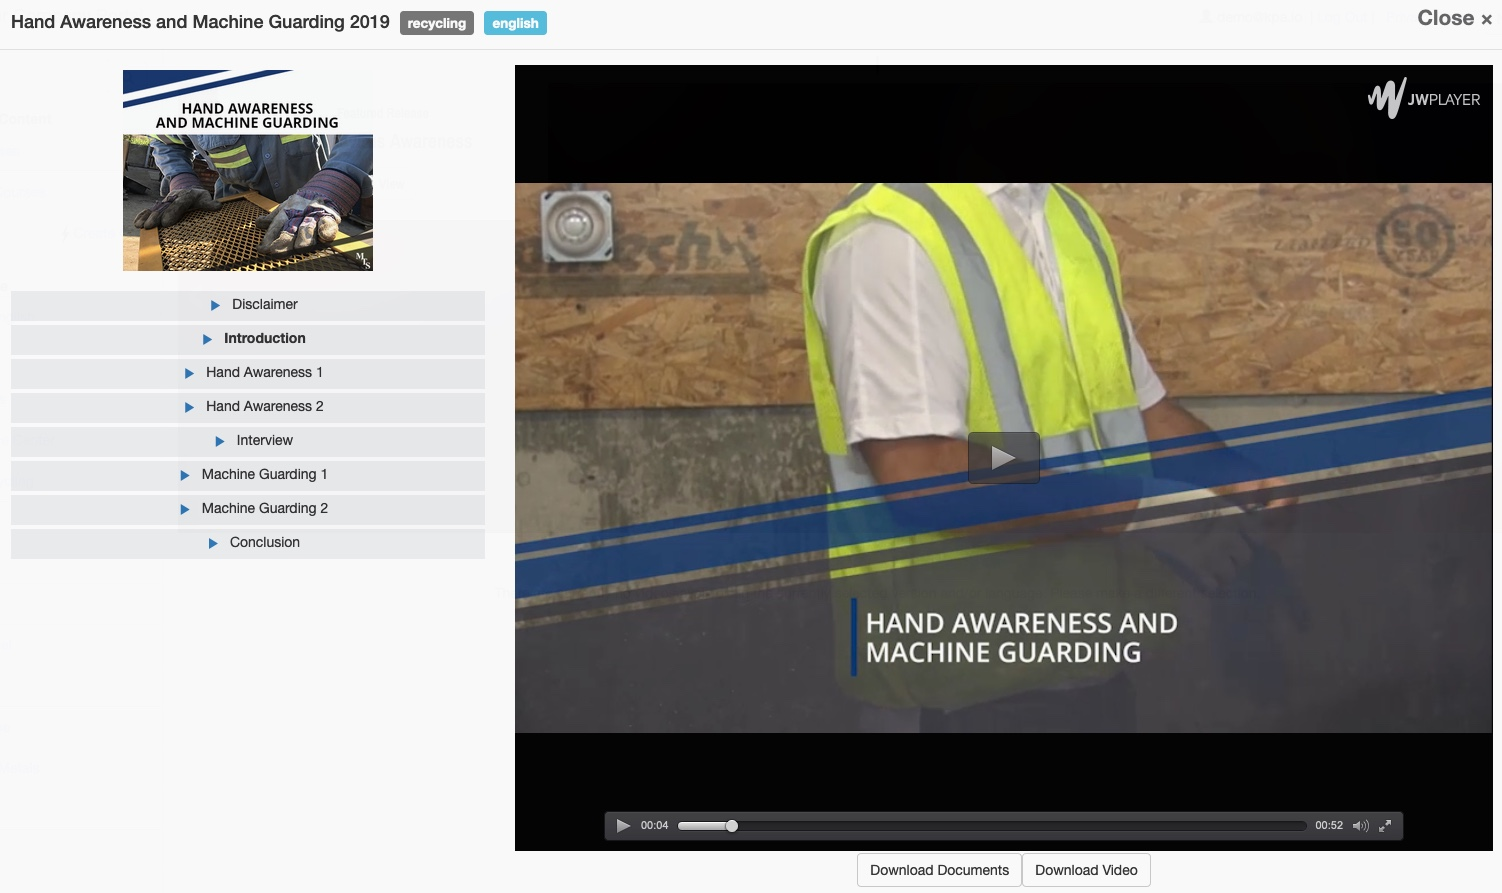 Machine Guarding and hand awareness online training video screenshot